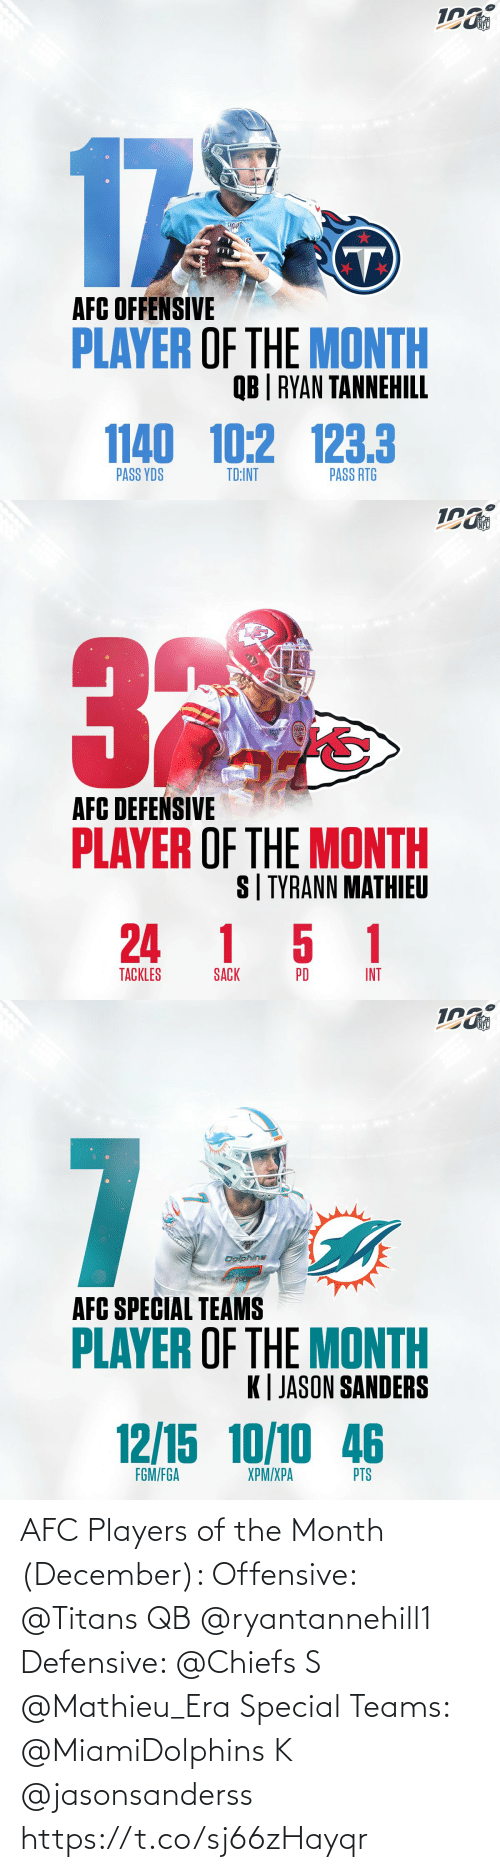 Of The Month: NFL  17  AFC OFFENSIVE  PLAYER OF THE MONTH  QB | RYAN TANNEHILL  1140 10:2 123.3  PASS RTG  PASS YDS  TD:INT   NFL  AFC DEFEŃSIVE  PLAYER OF THE MONTH  S| TYRANN MATHIEU  24 1 5 1  TACKLES  INT  PD  SACK   NFL  7  Dolphins  AFC SPECIAL TEAMS  PLAYER OF THE MONTH  K| JASON SANDERS  12/15 10/10 46  FGM/FGA  XPM/XPA  PTS AFC Players of the Month (December):   Offensive: @Titans QB @ryantannehill1    Defensive: @Chiefs S @Mathieu_Era   Special Teams: @MiamiDolphins K @jasonsanderss https://t.co/sj66zHayqr